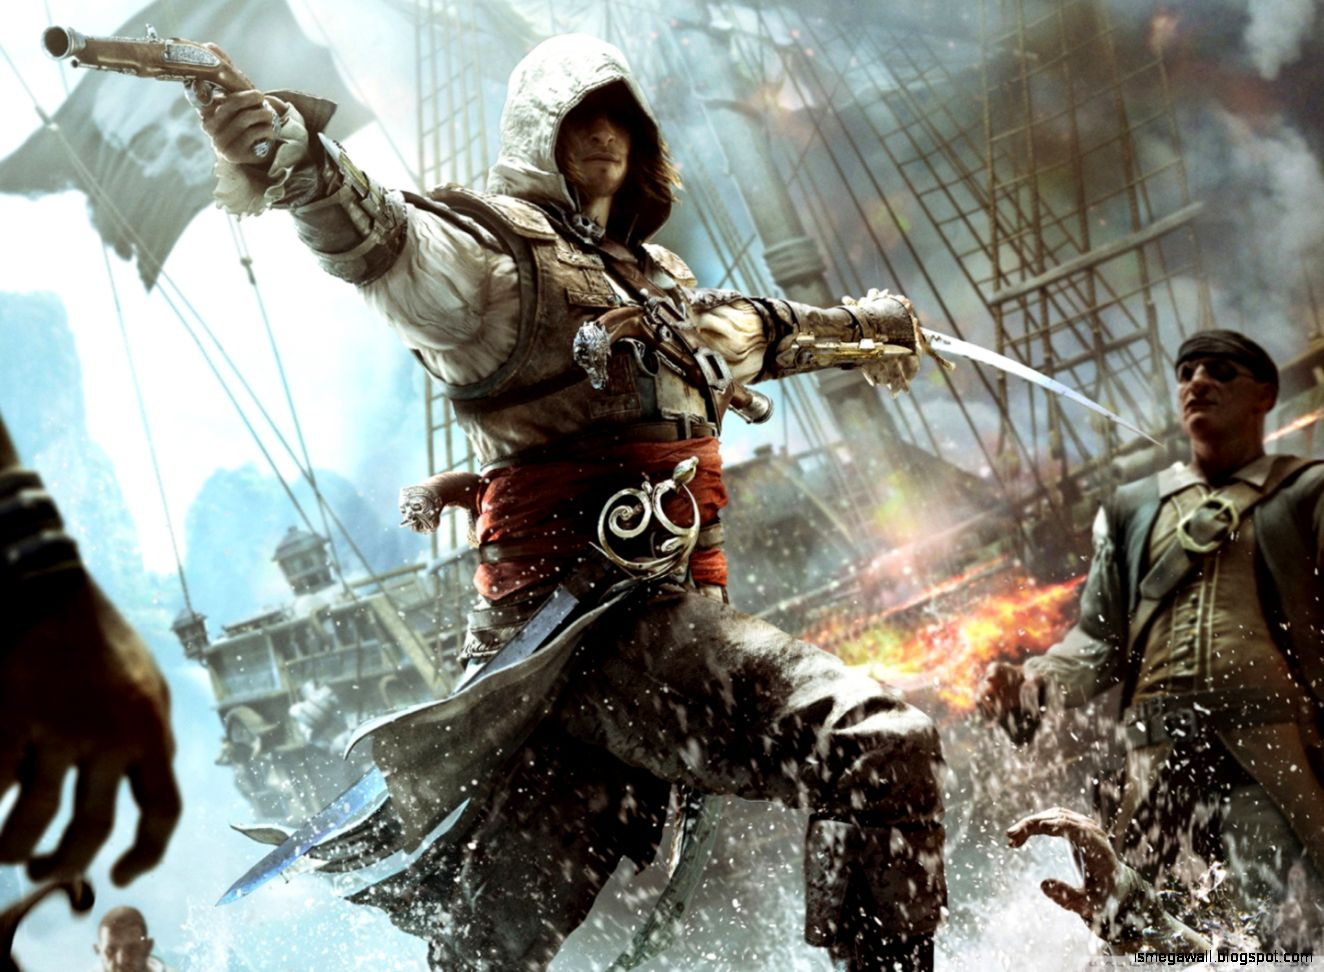 edward kenway in assassins creed wallpapers - Assassins Creed IV Black Flag Edward Kenway